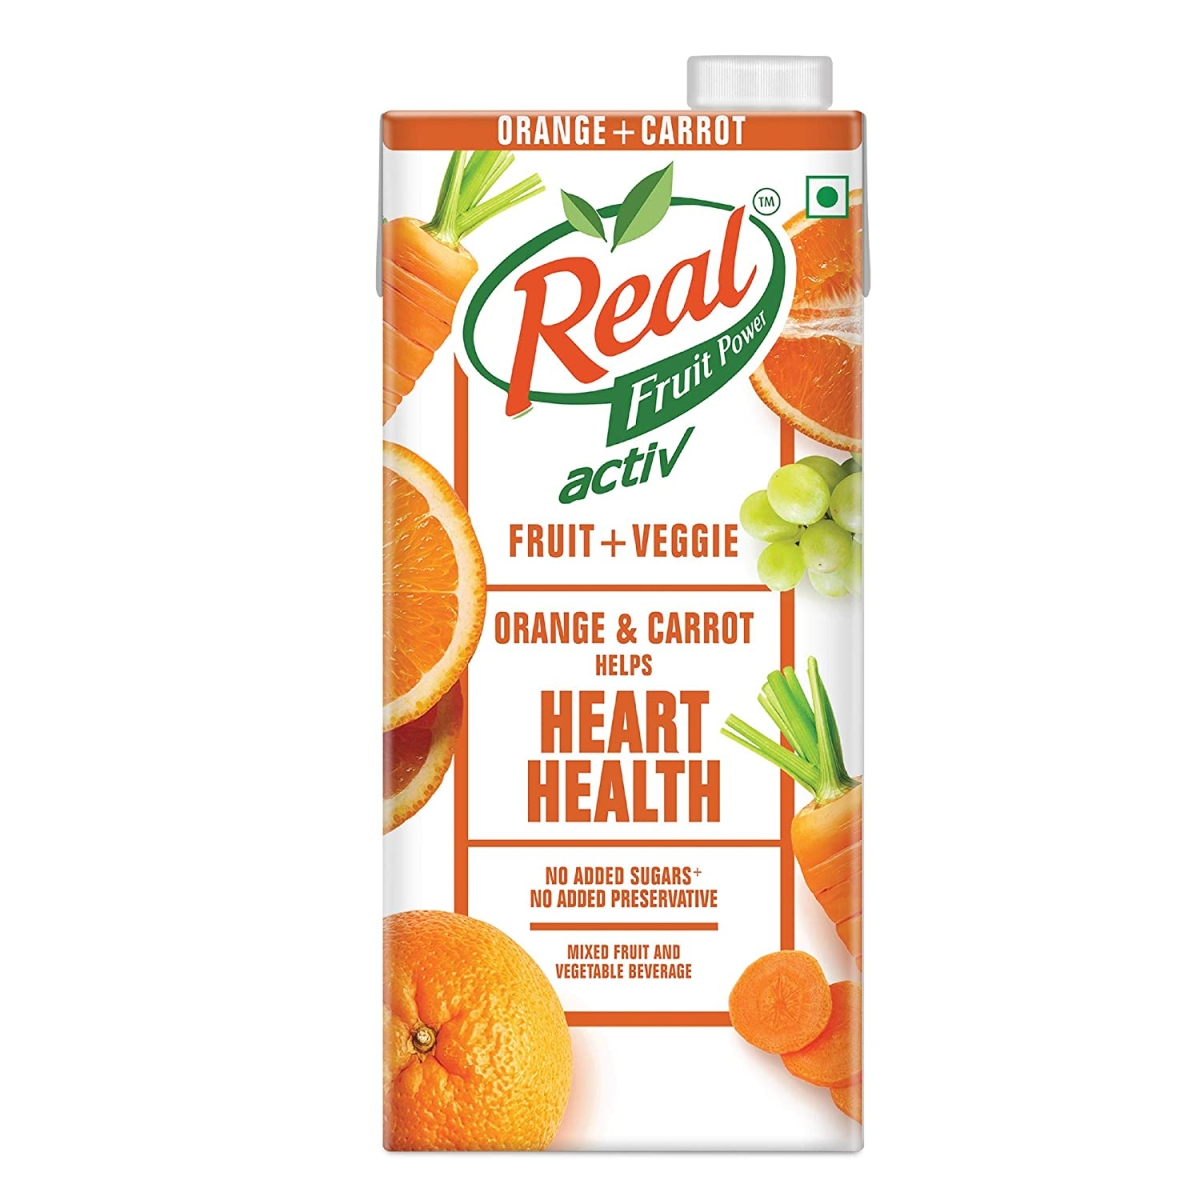 Dabur's Real Activ fruit, veggie juice cartons now say 'gut health', 'heart health', 'immunity boost'